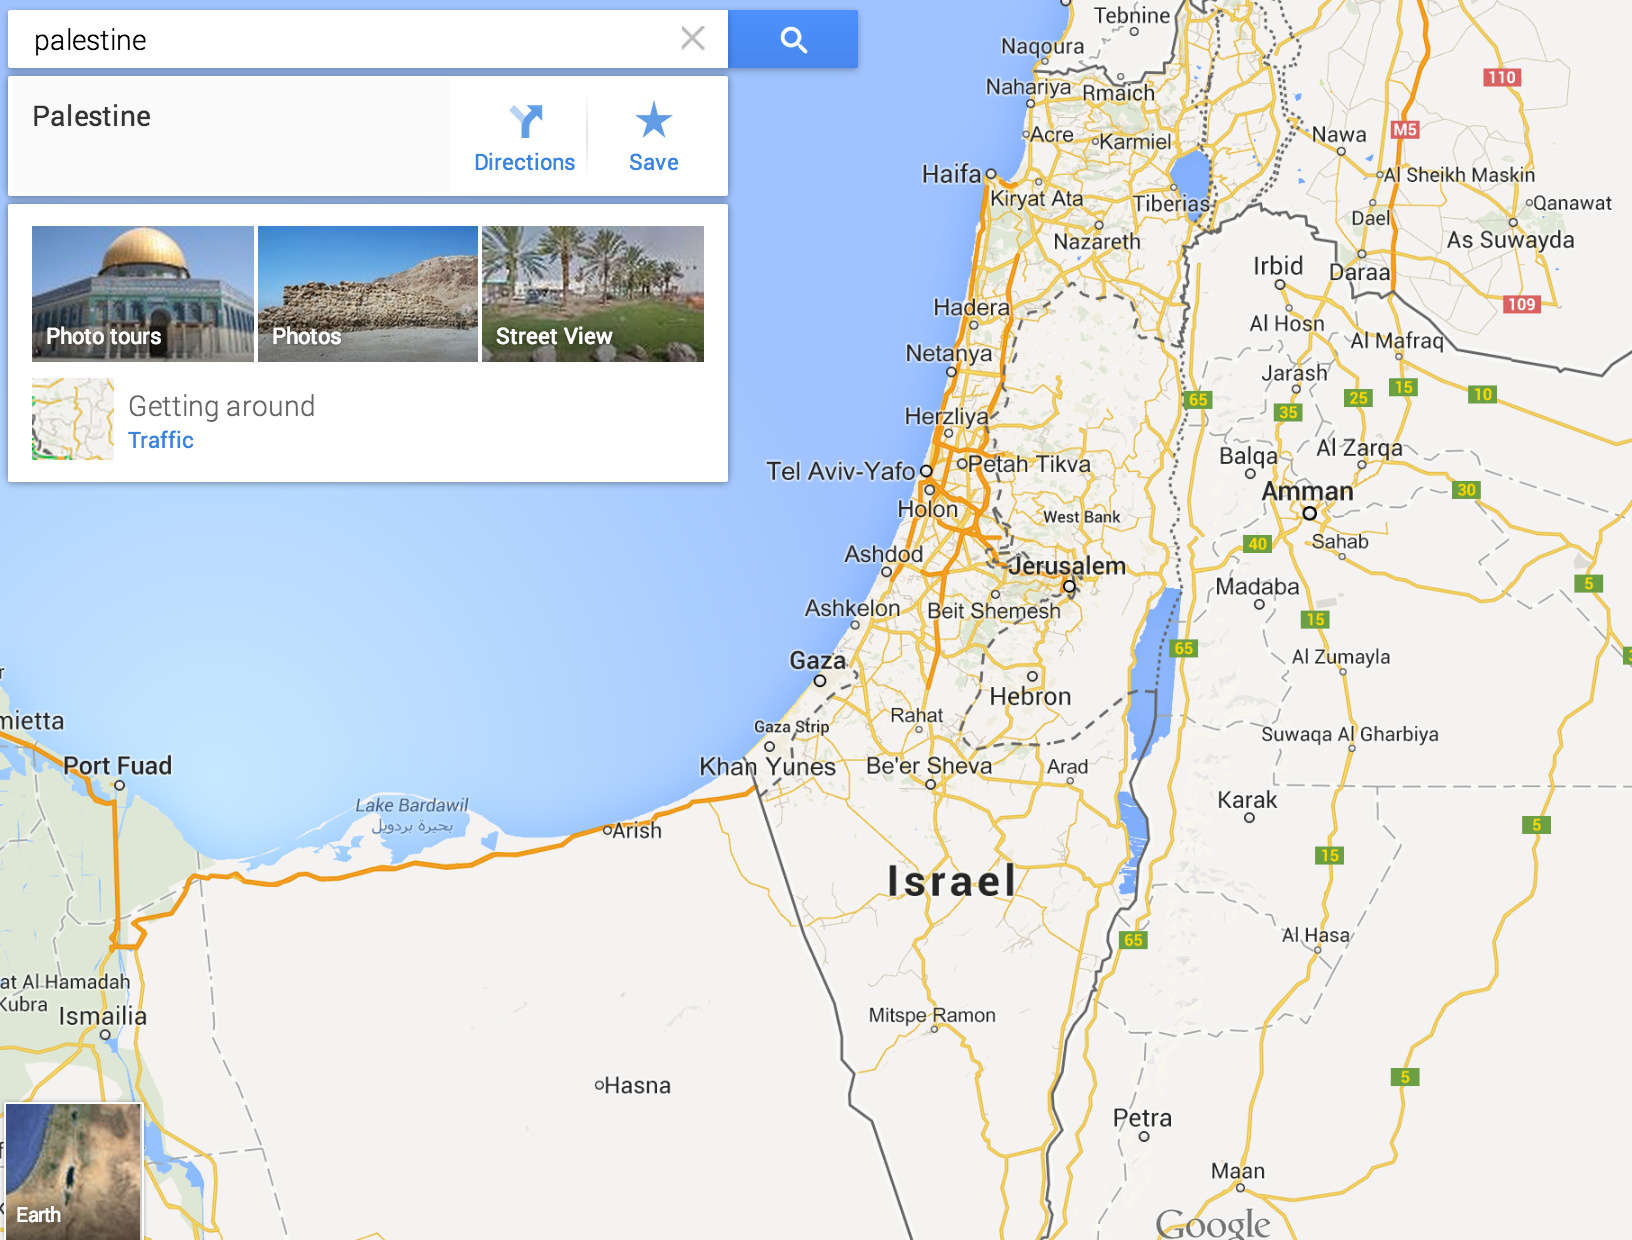 Palestine Does Not Receive Label on Google Maps on masada map google, guyana map google, hungary map google, nauru map google, swaziland map google, trinidad and tobago map google, venezuela map google, vatican city map google, anguilla map google, monaco map google, bermuda map google, belarus map google, arabian peninsula map google, congo map google, uzbekistan map google, corinth map google, byzantine empire map google, baghdad map google, cook islands map google, georgia map google,